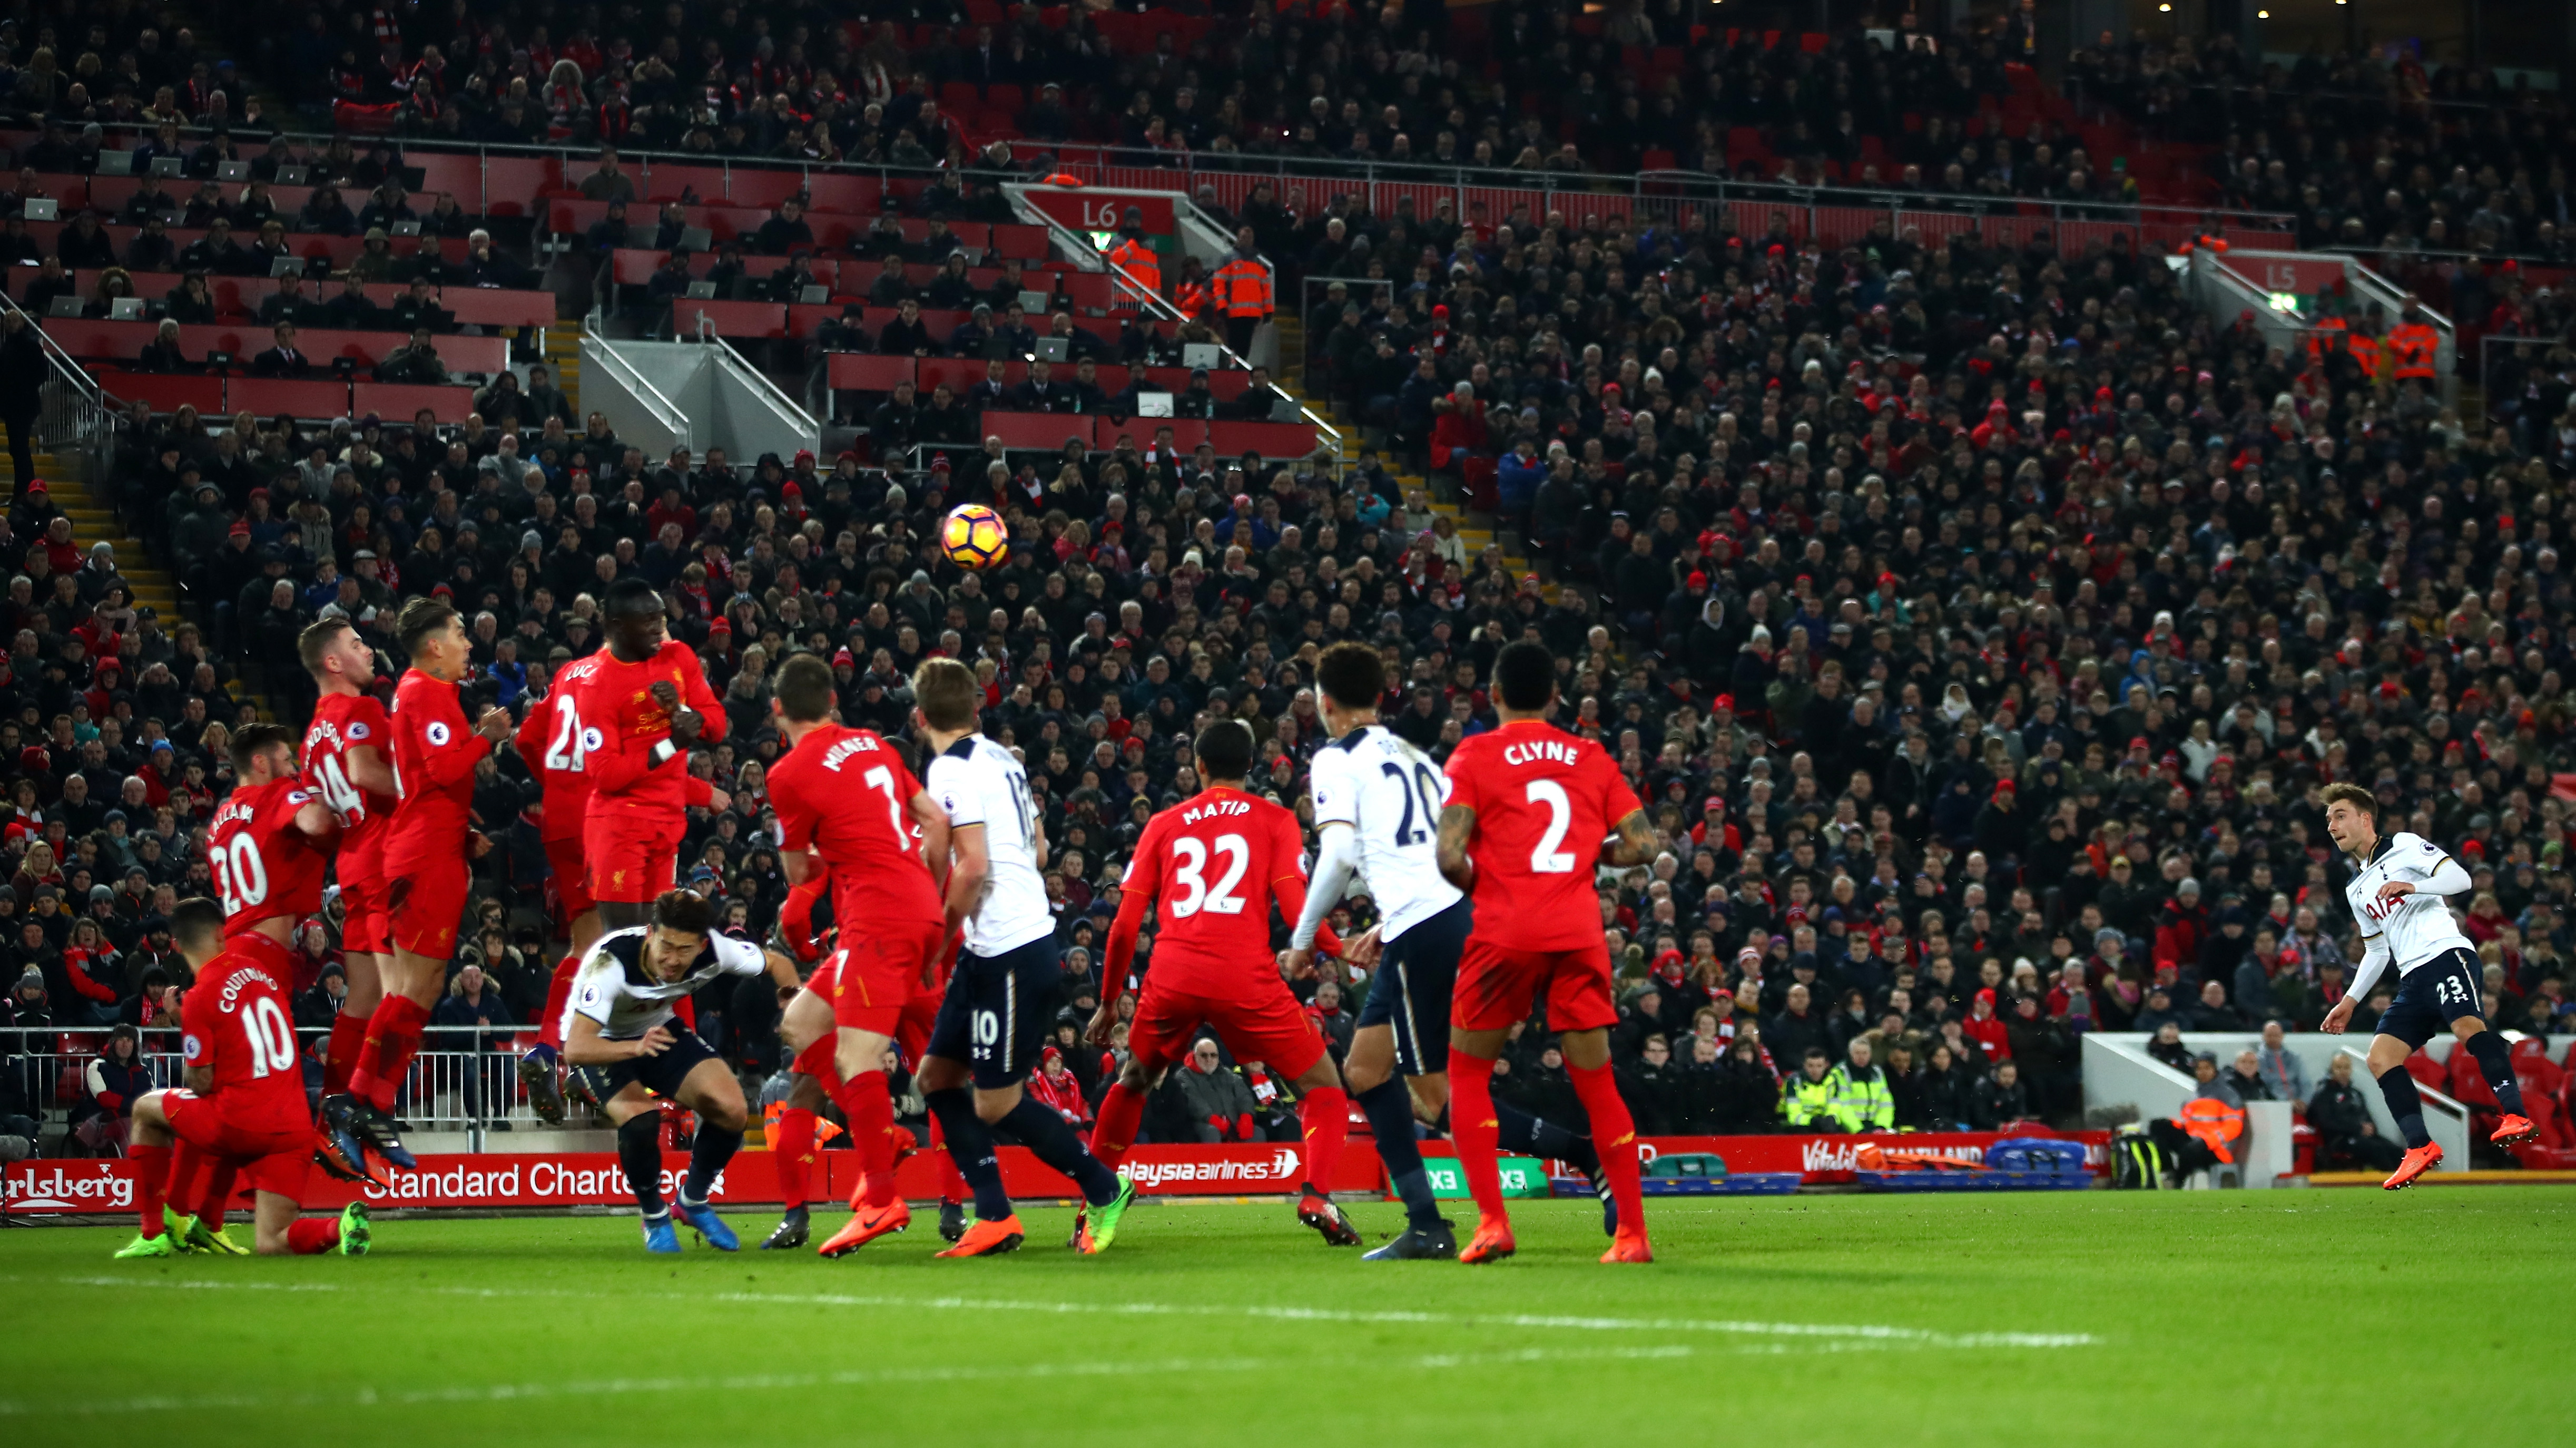 Liverpool star Philippe Coutinho's unusual free-kick method inspired by Marcelo